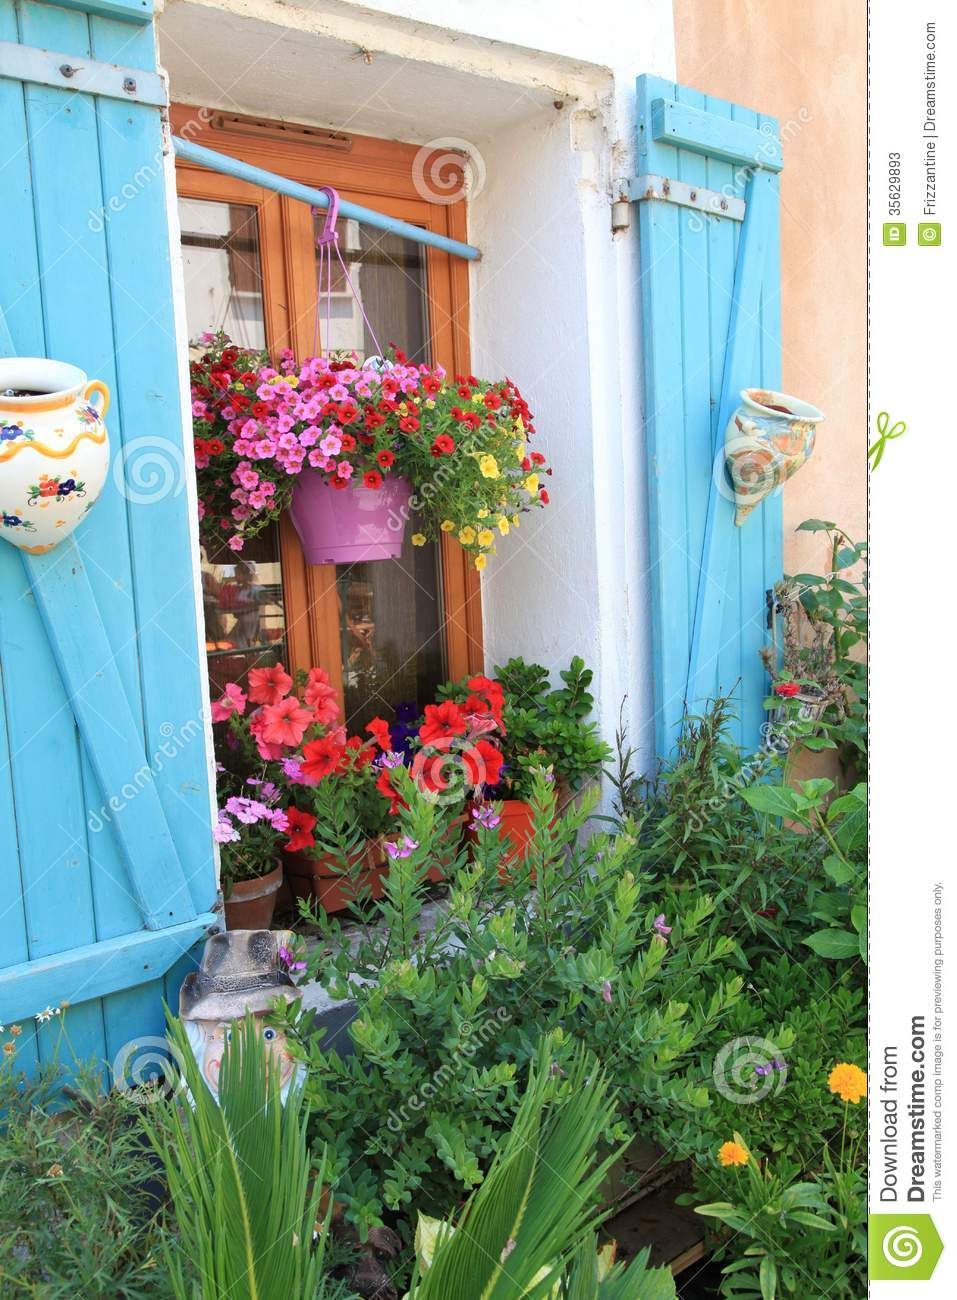 Flowers and plants decorating house exterior stock photos - How to decorate my home ...